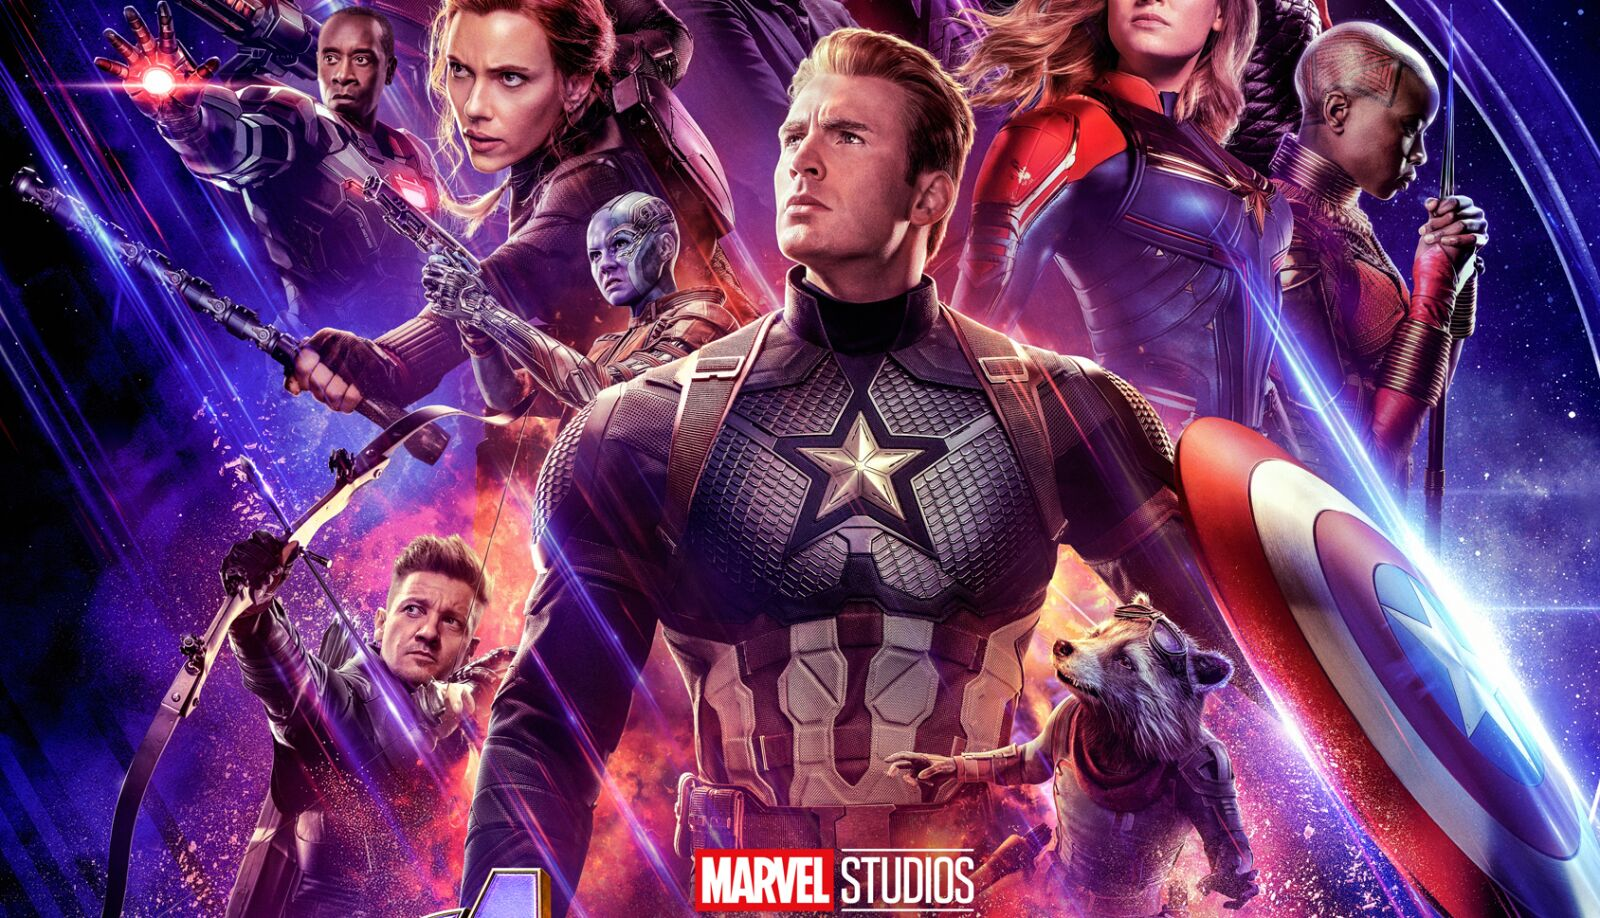 The Russo Brothers keeping Avengers: Endgame marketing spoiler-free